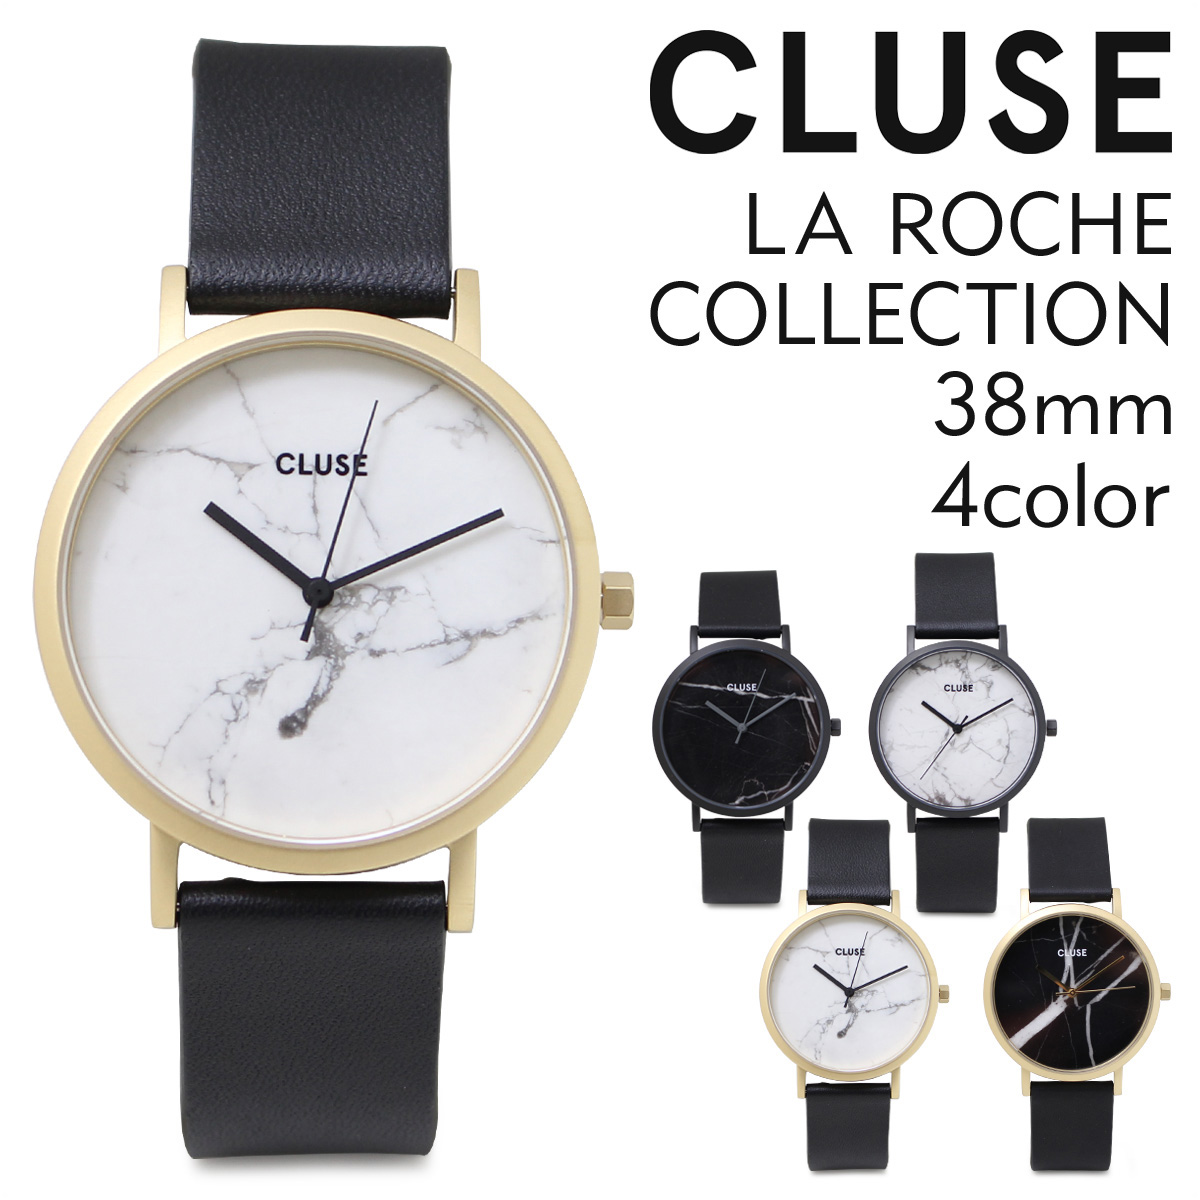 CLUSE 腕時計 38mm クルース レディース フル ロシェ コレクション LA ROCHE COLLECTION CL40001 CL40002 CL40003 CL40004